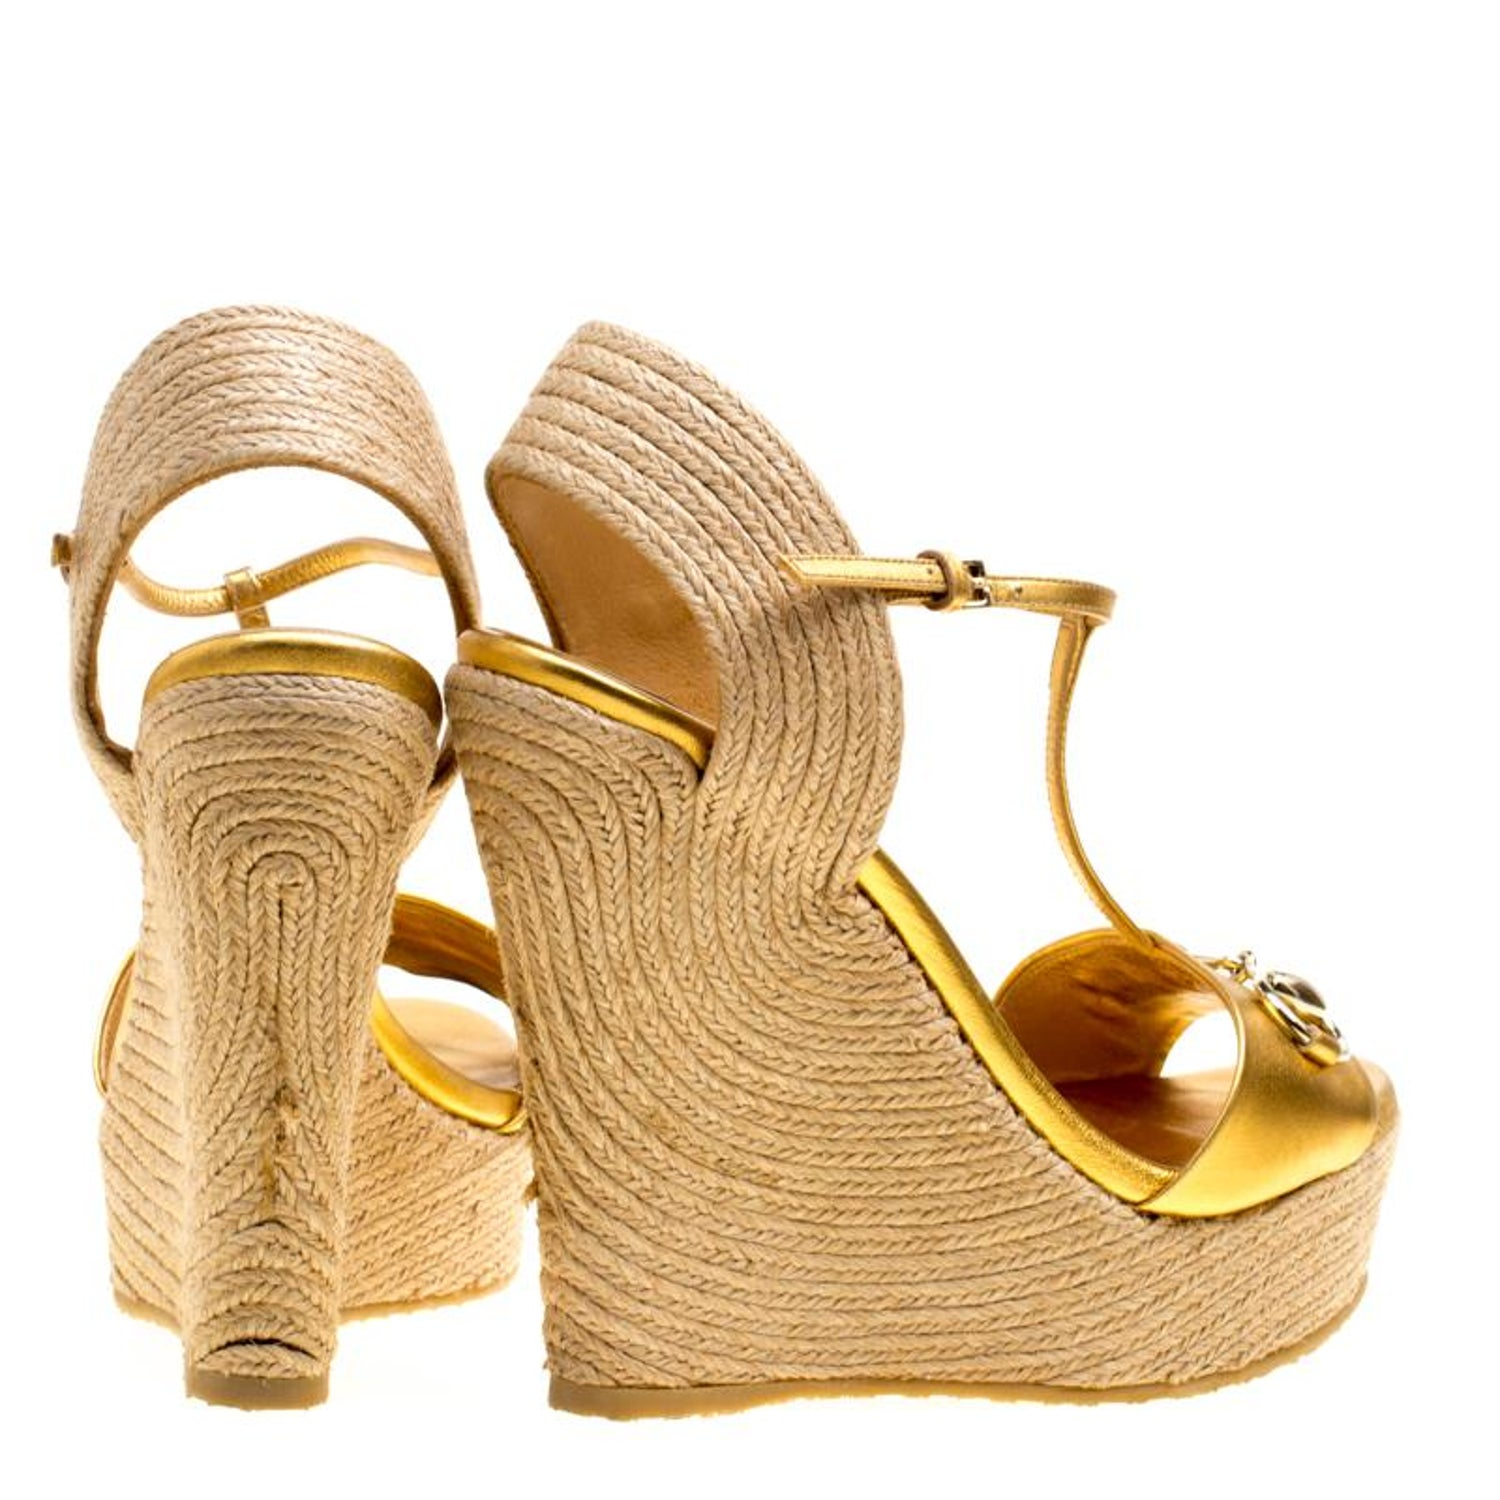 846221a6b Gucci Gold Metallic Leather Horsebit T-Strap Espadrille Wedge Sandals Size  36.5 at 1stdibs